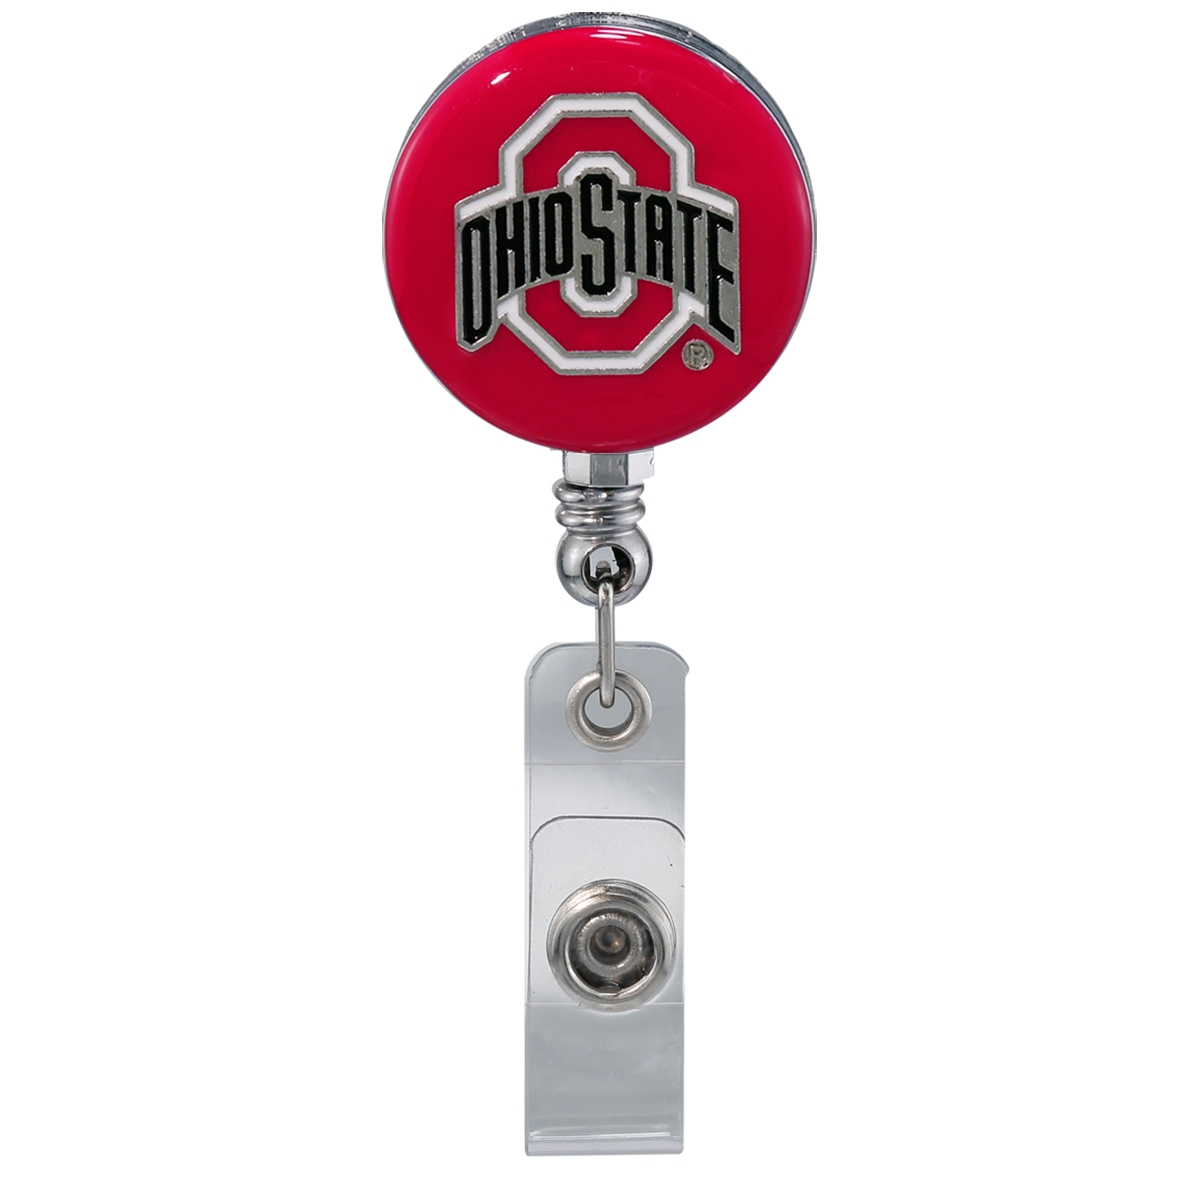 ohio state home decor.htm id lanyard ohio state university buckeyes  id lanyard ohio state university buckeyes